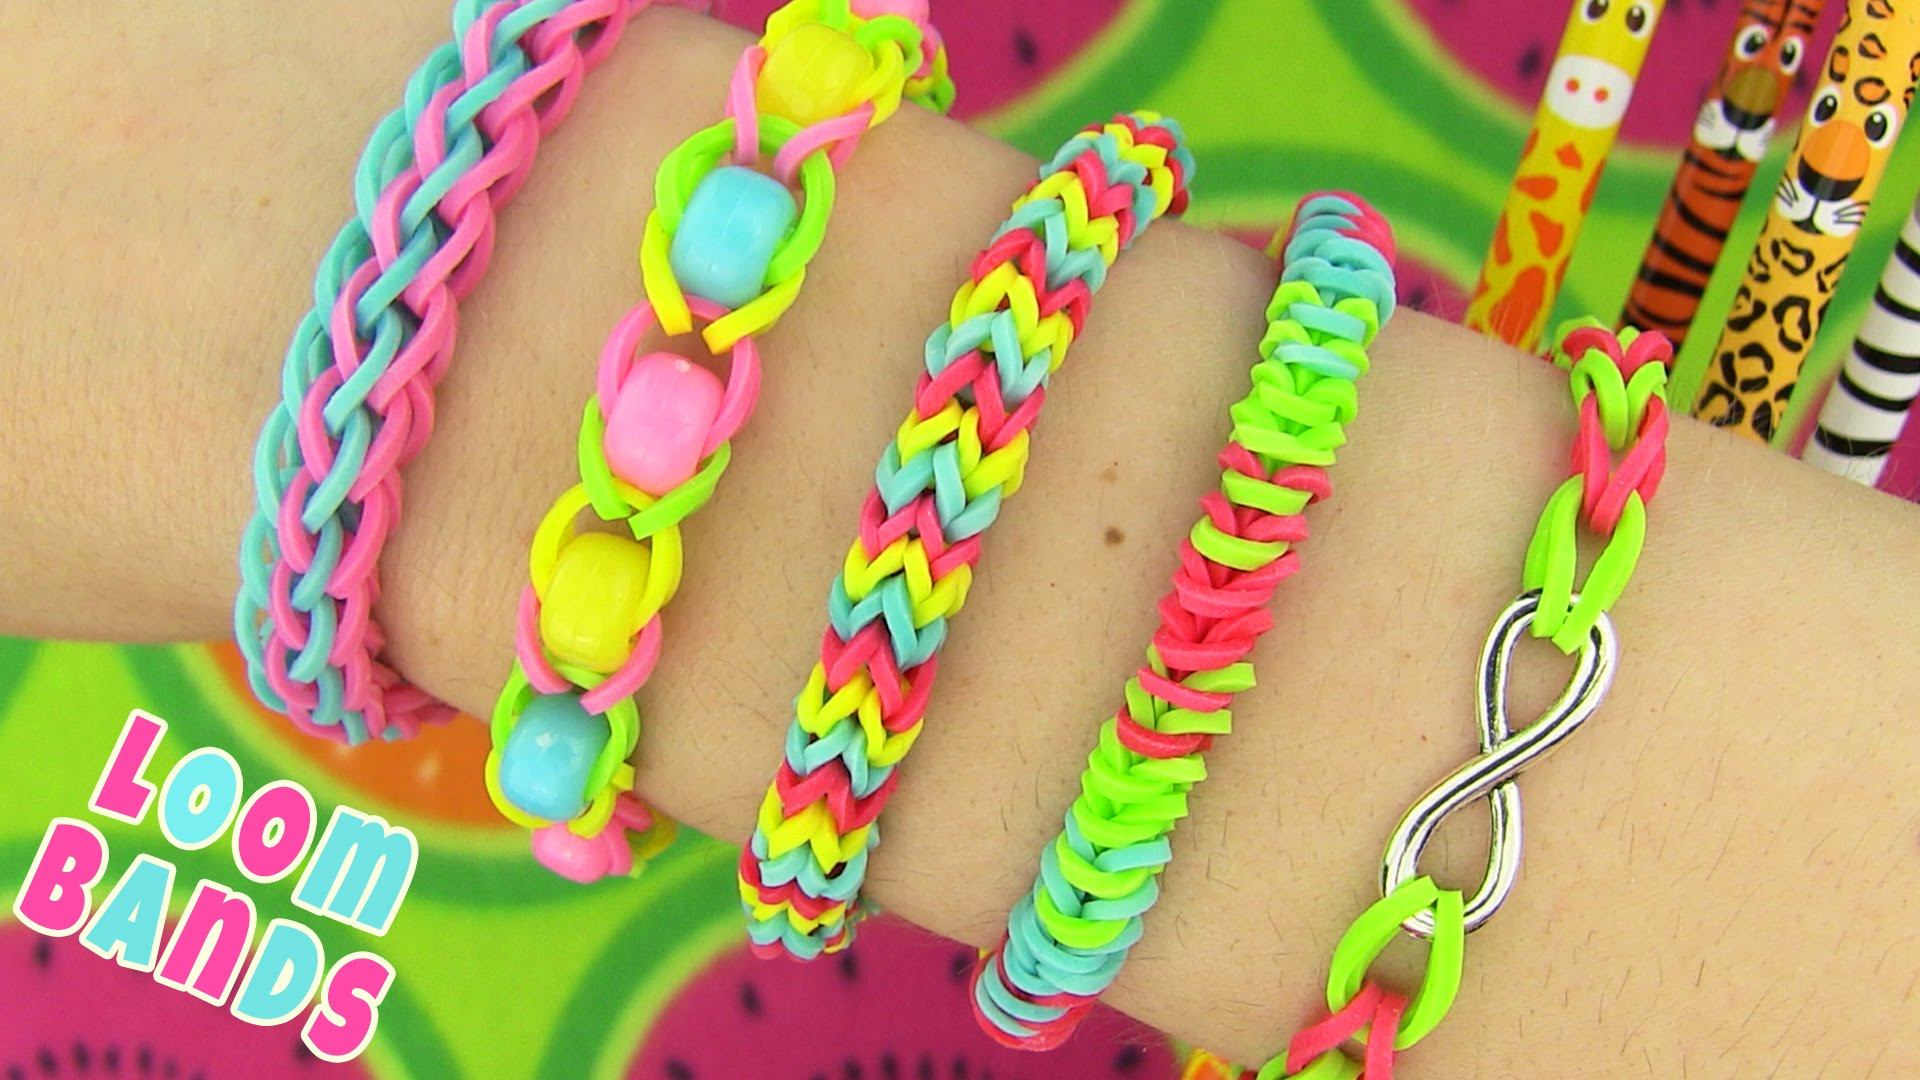 How to Make Loom Bands. 5 Easy Rainbow Loom Bracelet Designs without a Loom – Rubber band Bracelets